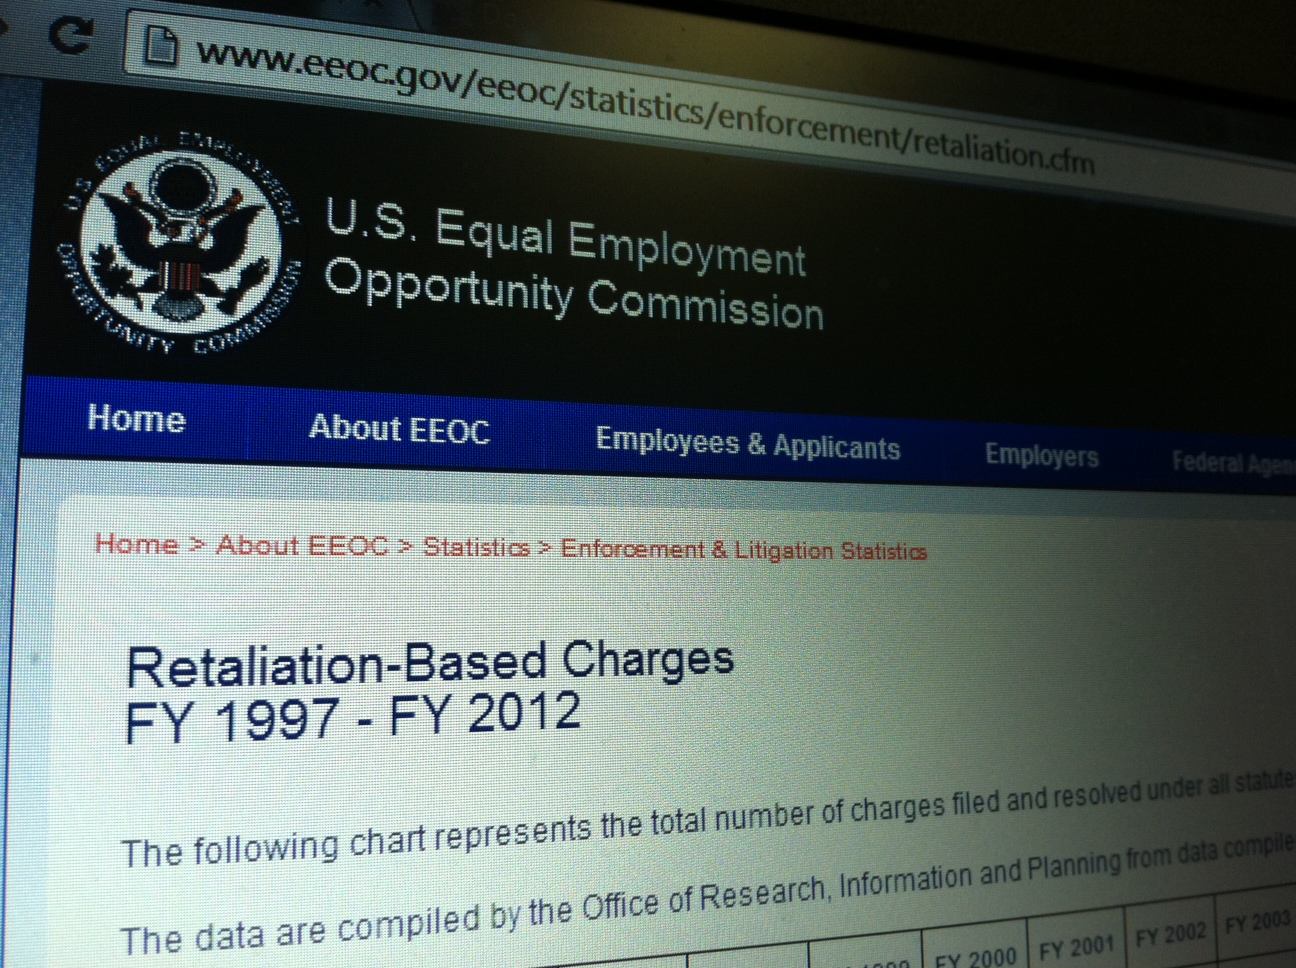 How do i write my comlpaint to the eeoc